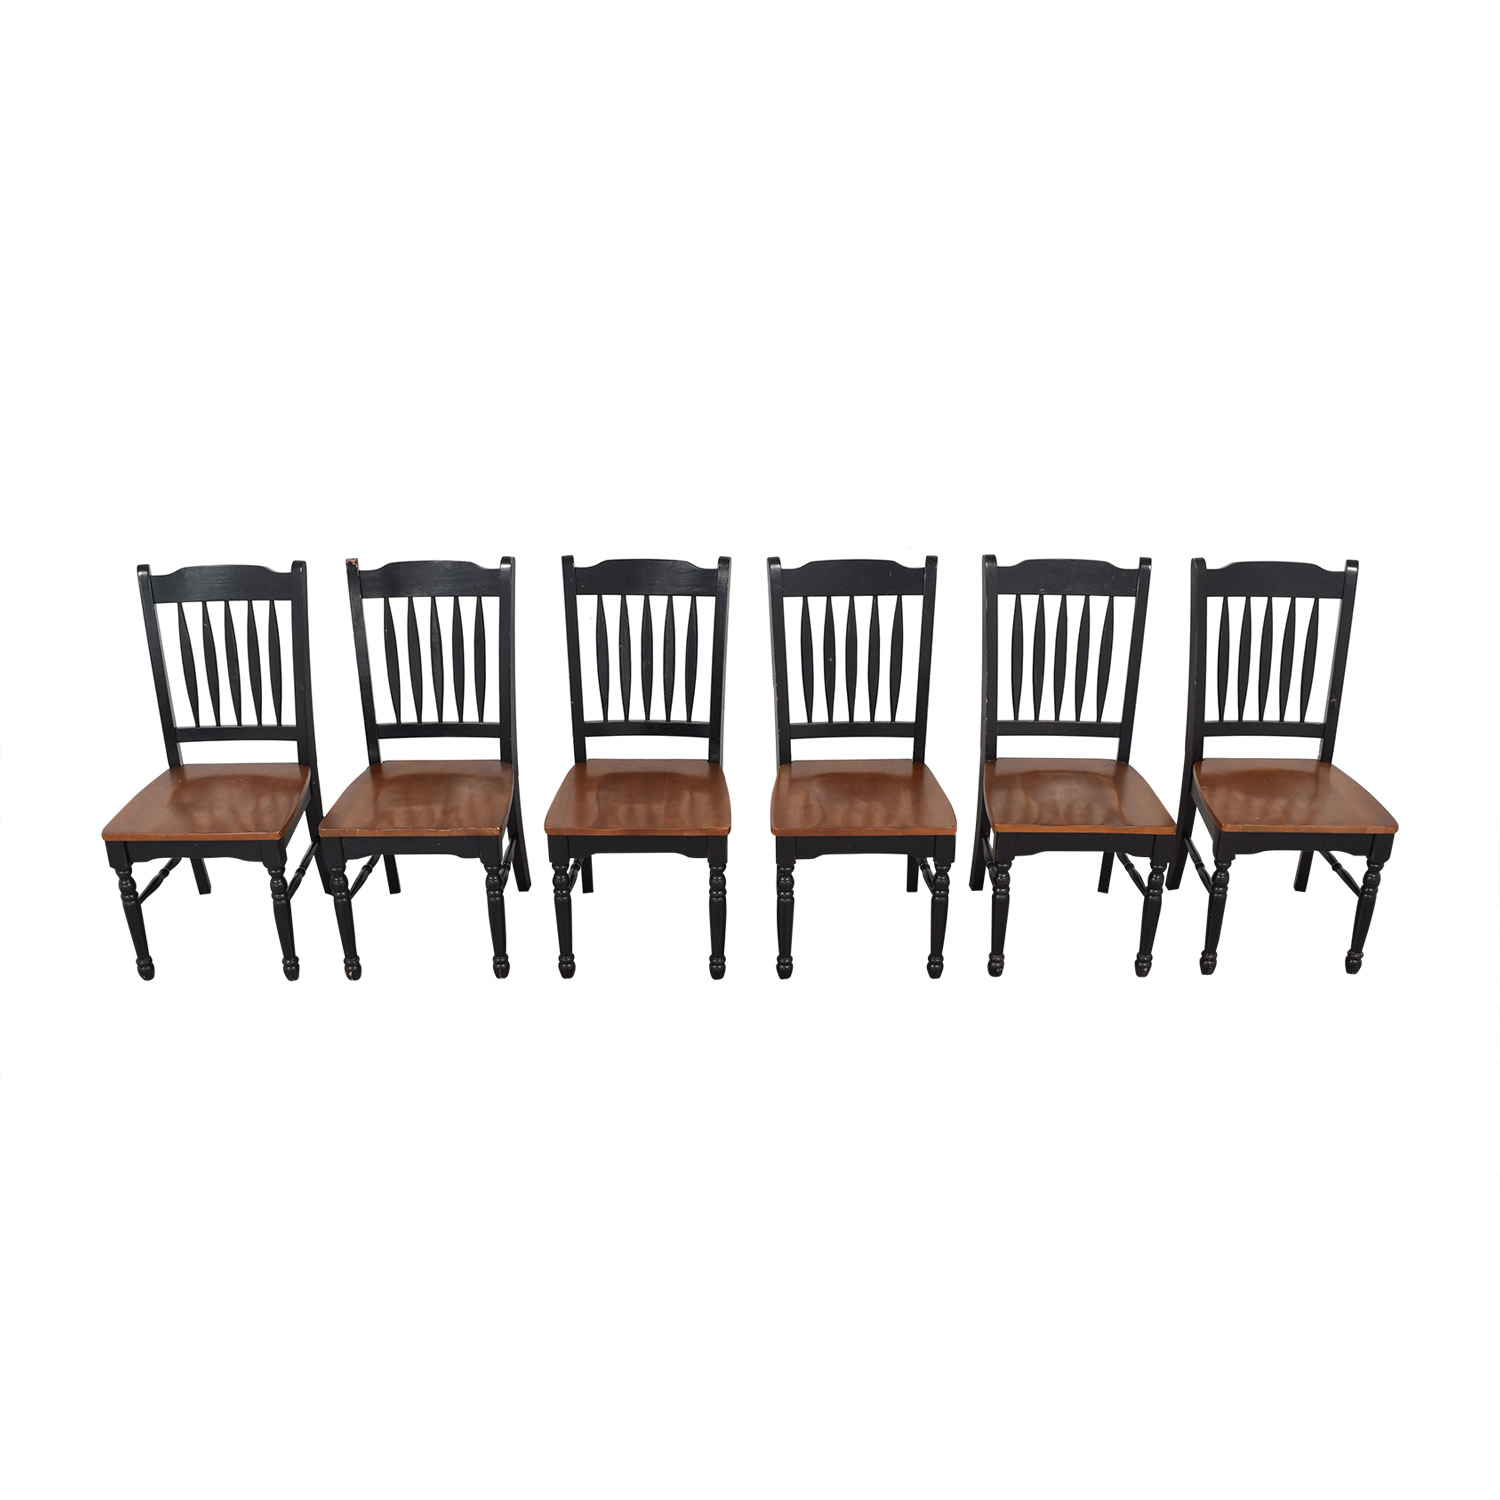 buy Pottery Barn Pottery Barn Spindle Back Dining Chairs online